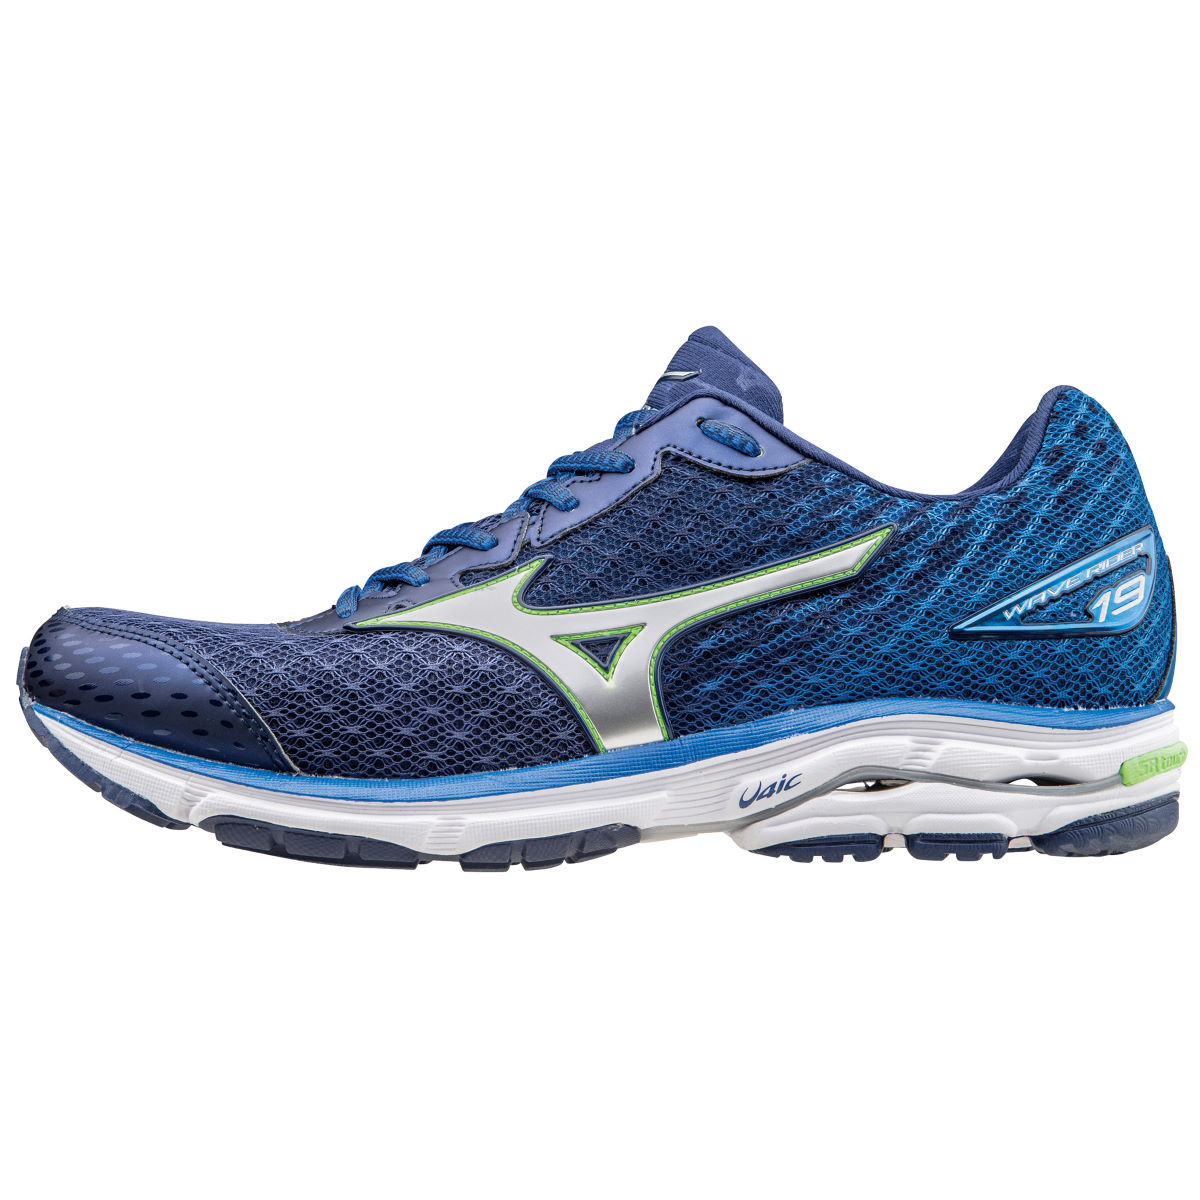 Mizuno Wave Rider 19 Shoes (AW16)